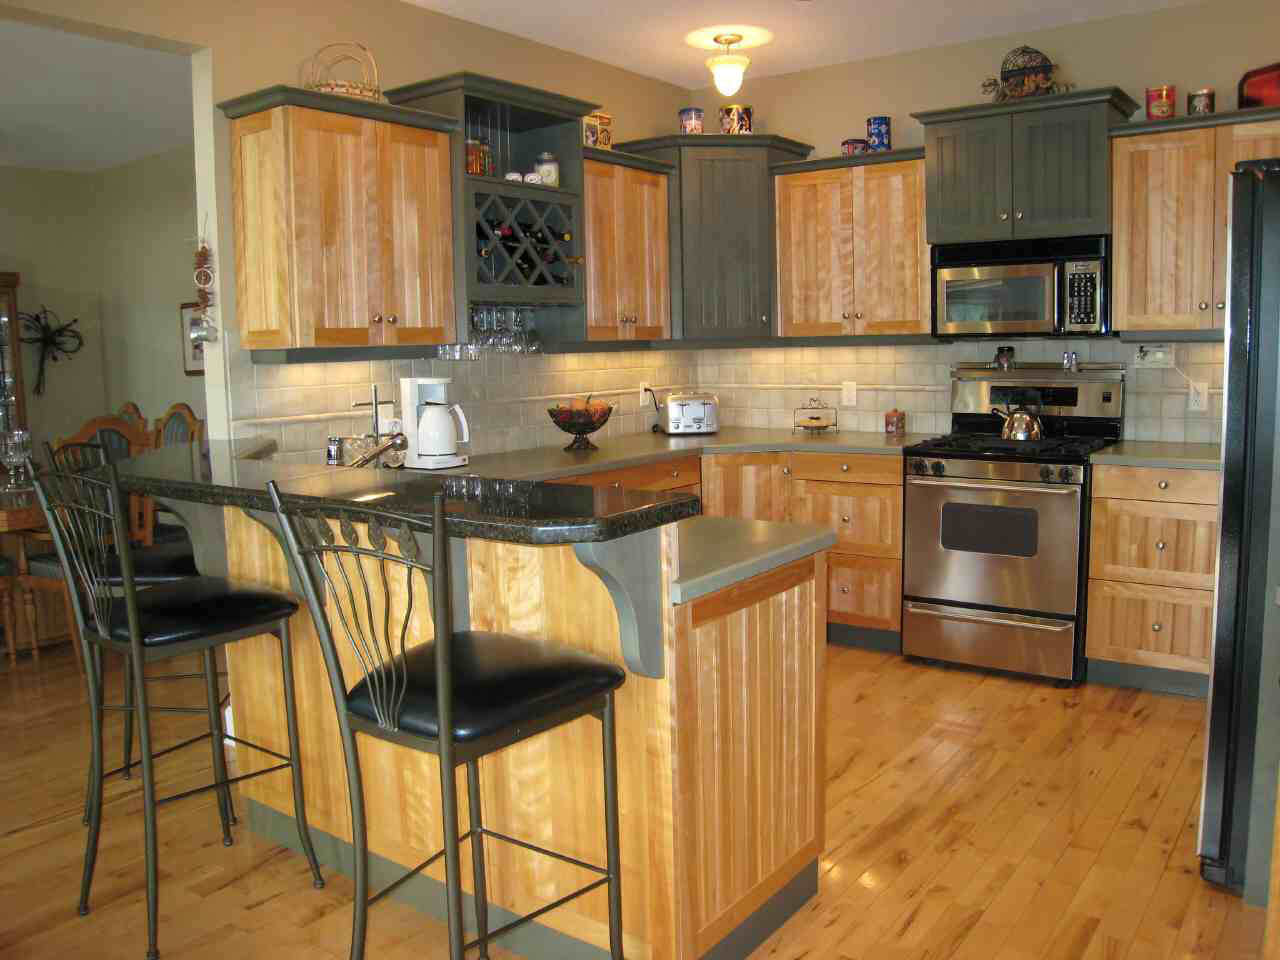 Beautiful kitchen designs decorating ideas for Kitchen decorating ideas pictures